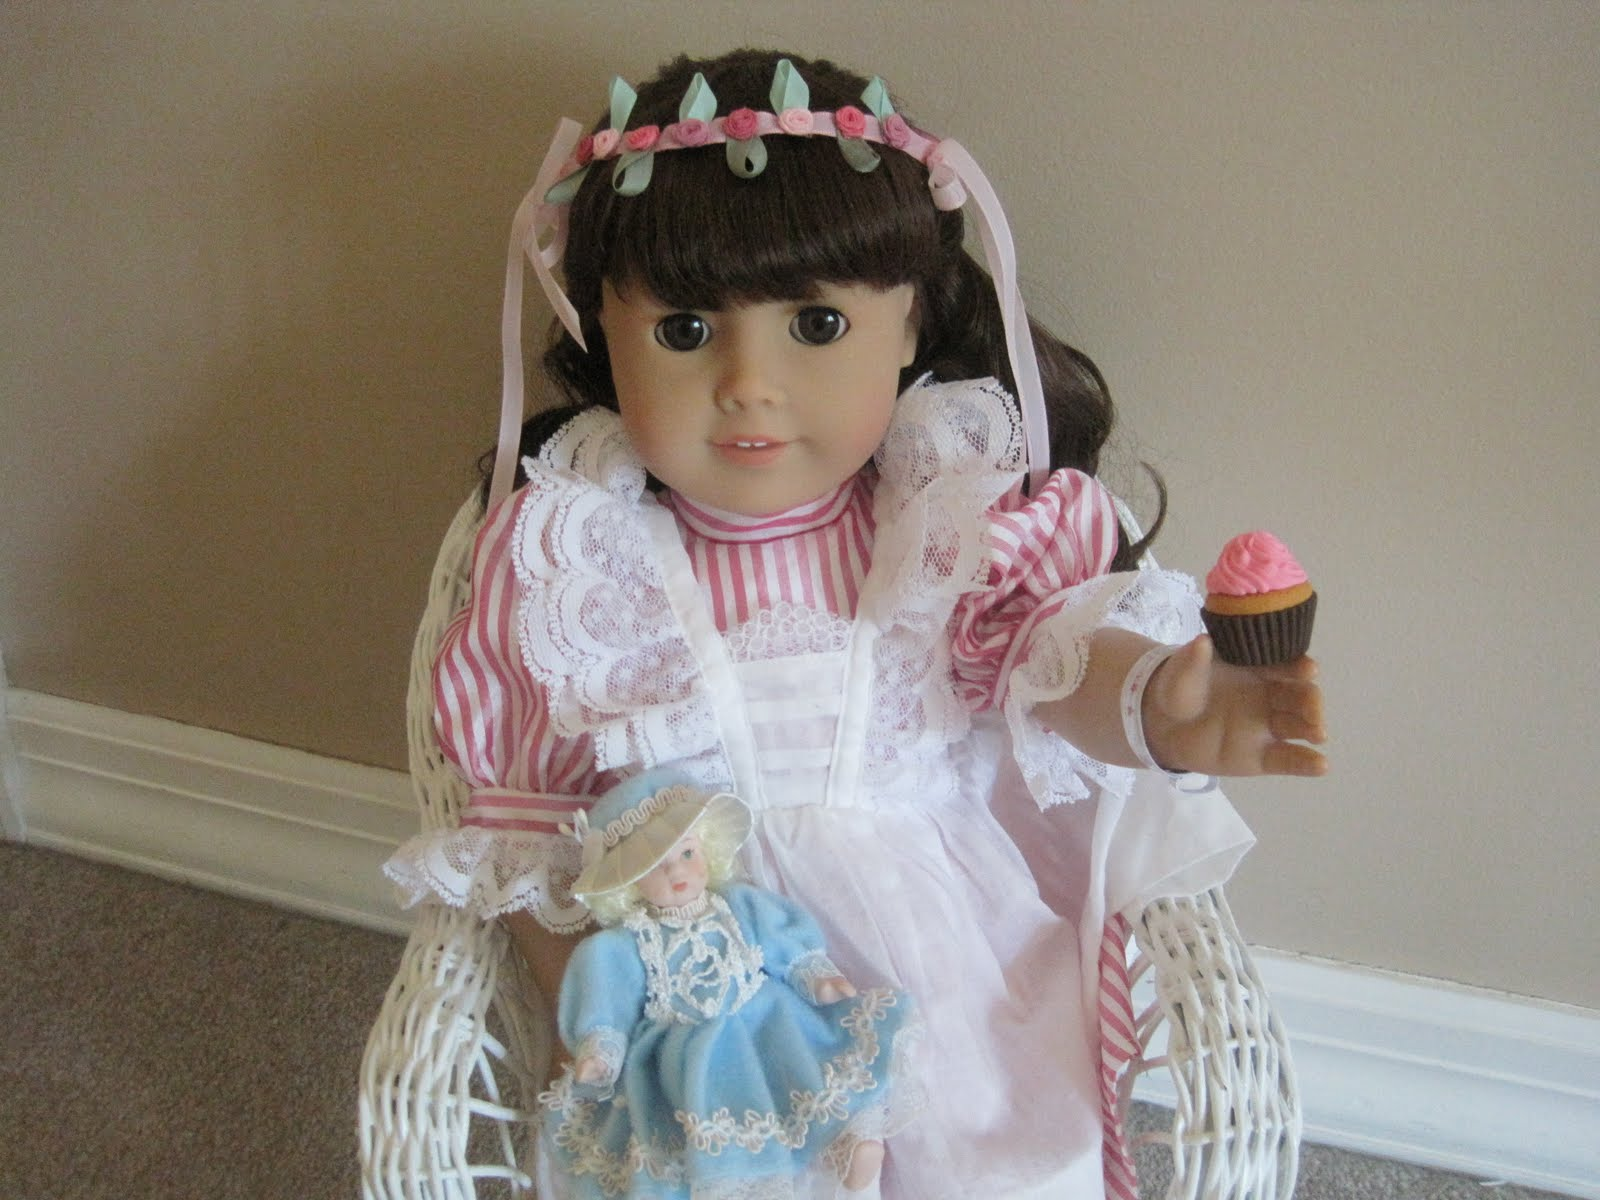 American Girl Dolls Forever!: It's American Girl Doll